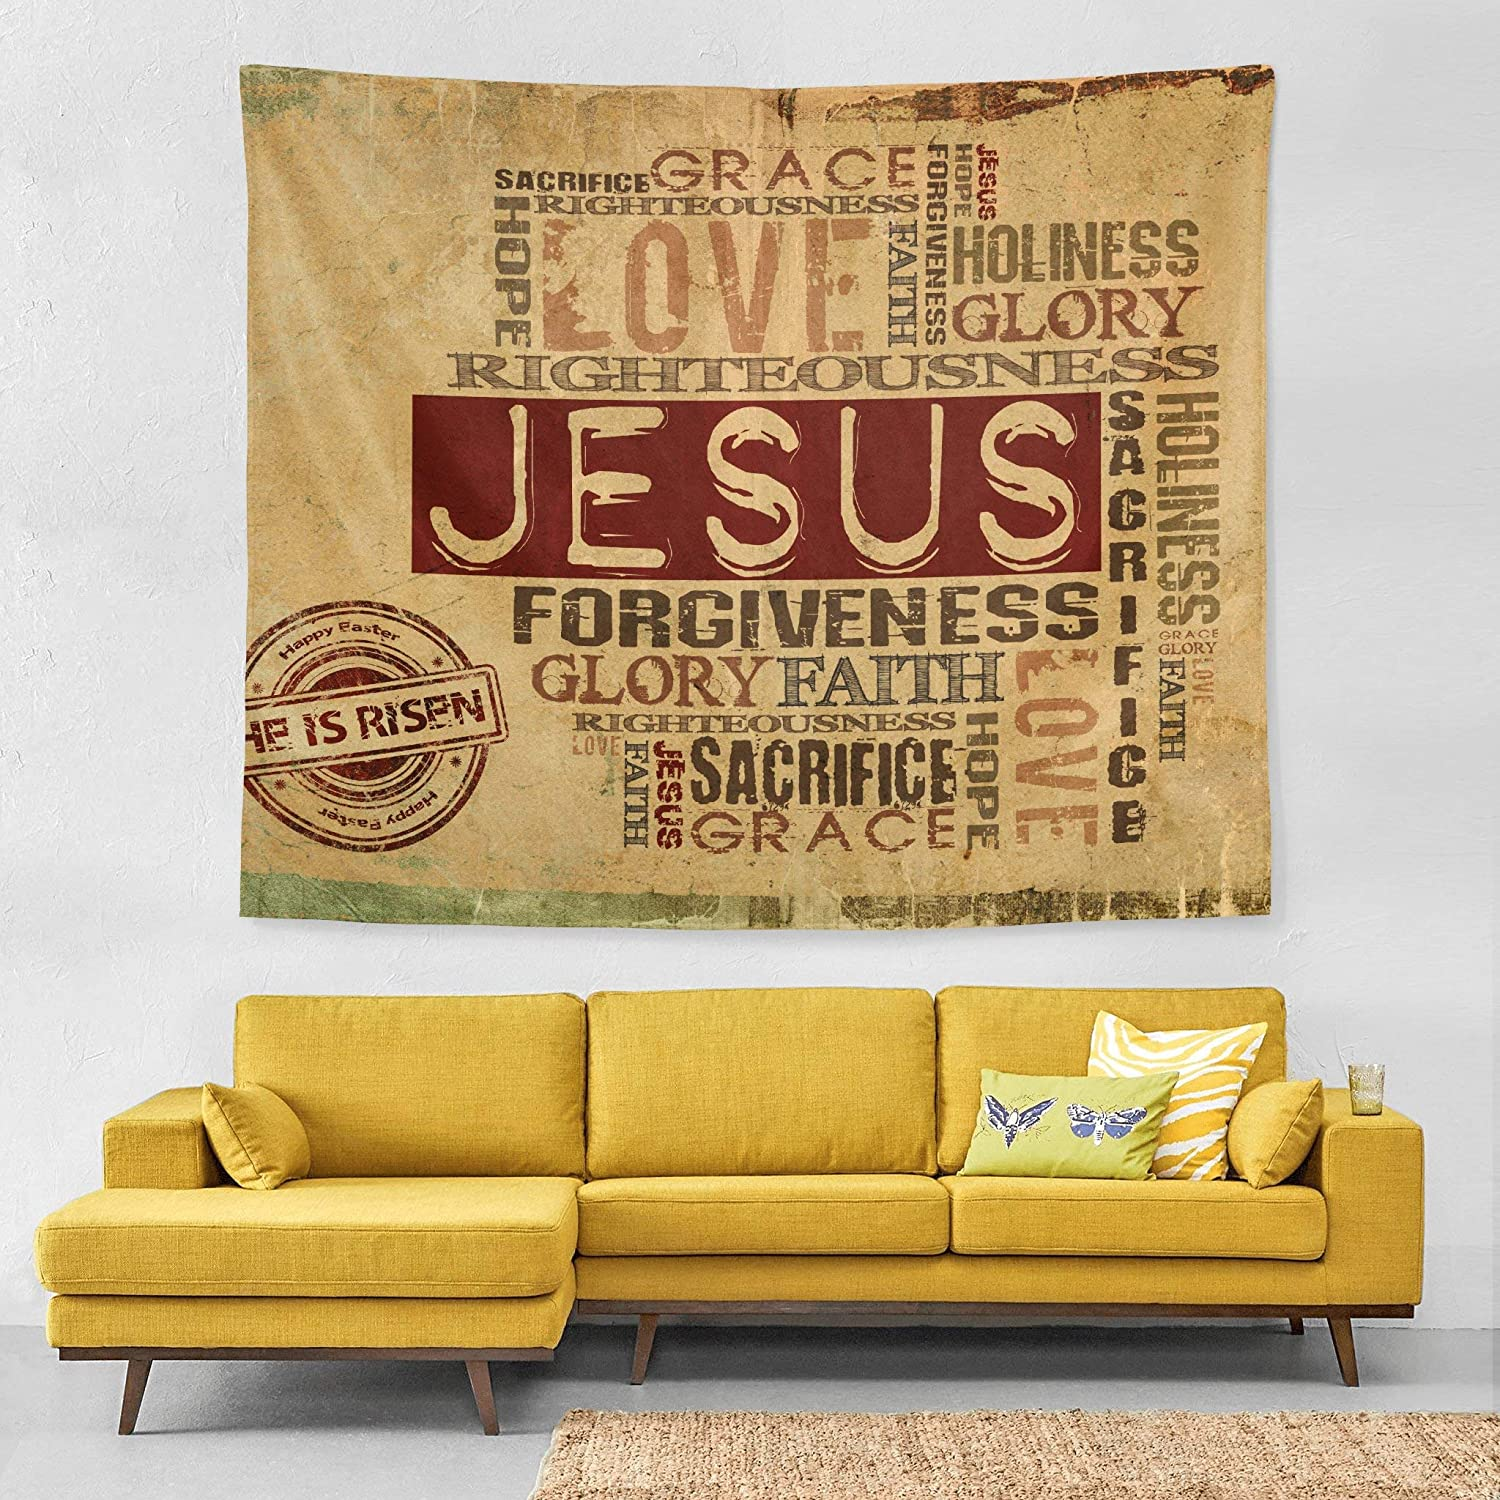 Wall Tapestry Jesus He is Risen Religious Livingroom Exclusive Decor Wall Hanging Art 60x51 Inches Horizontal Wall Backdrop Blankets for Bed Room Divider